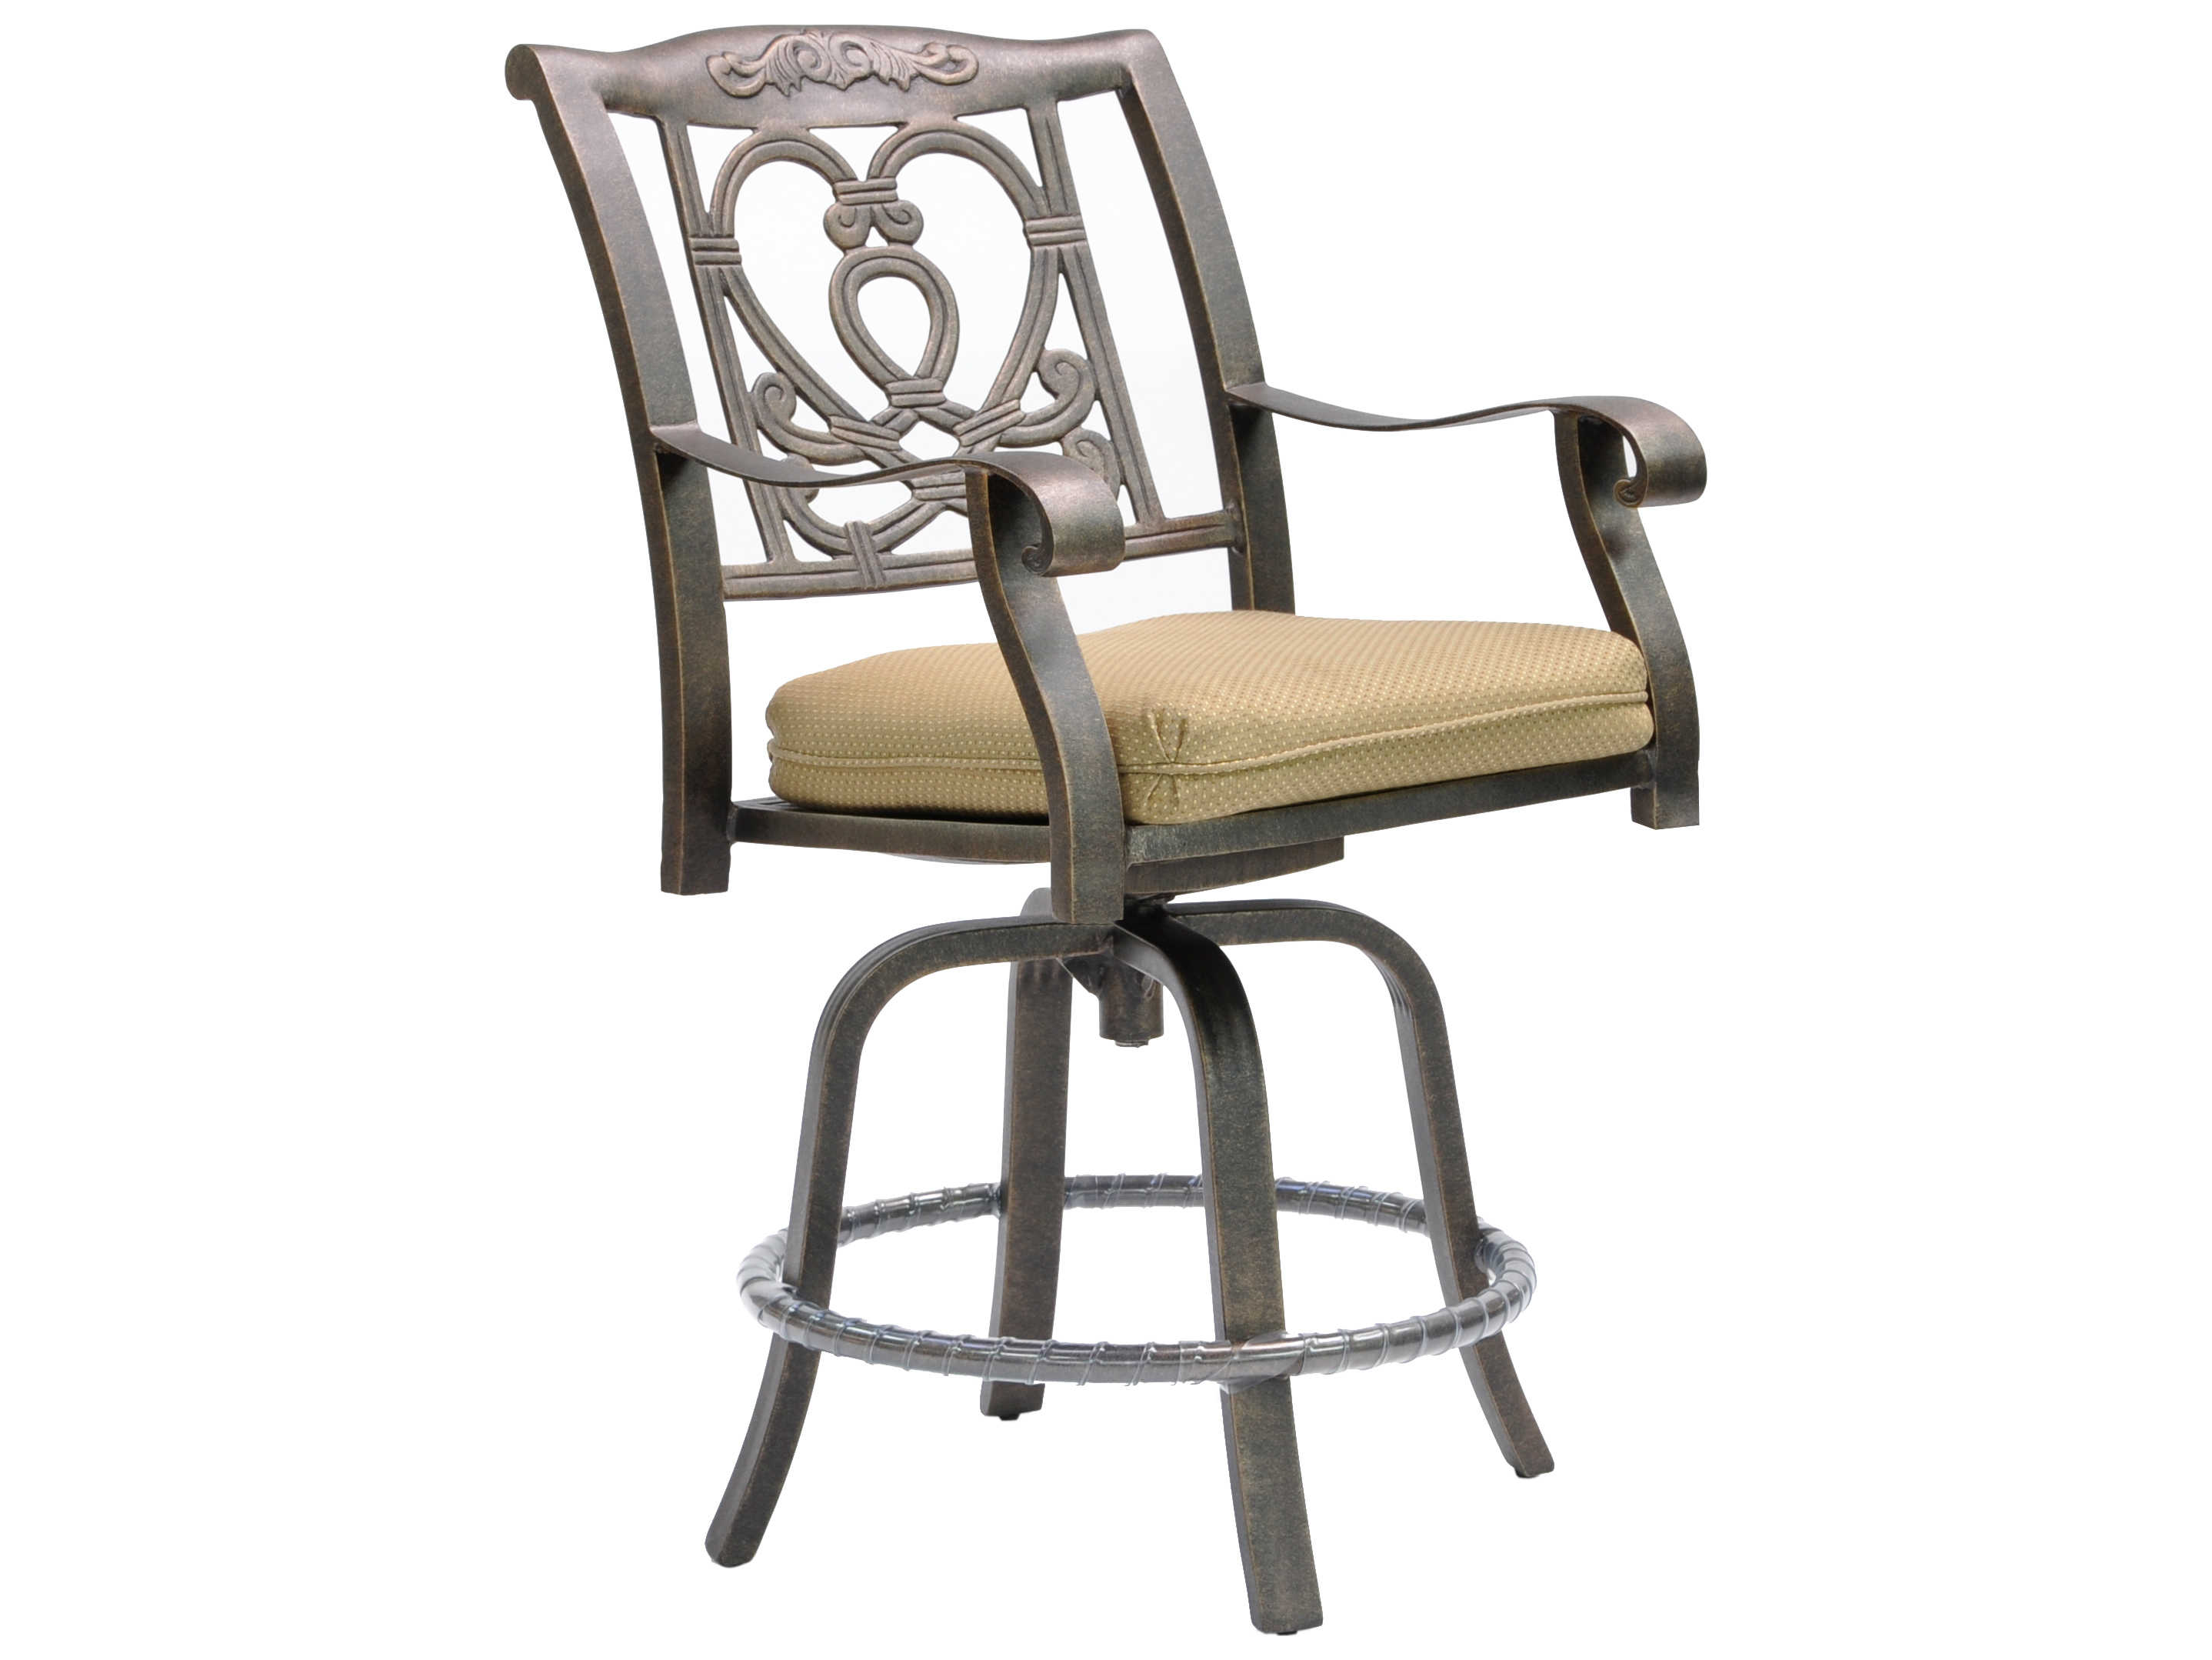 Castelle Madrid Cast Aluminum Swivel Counter Stool With